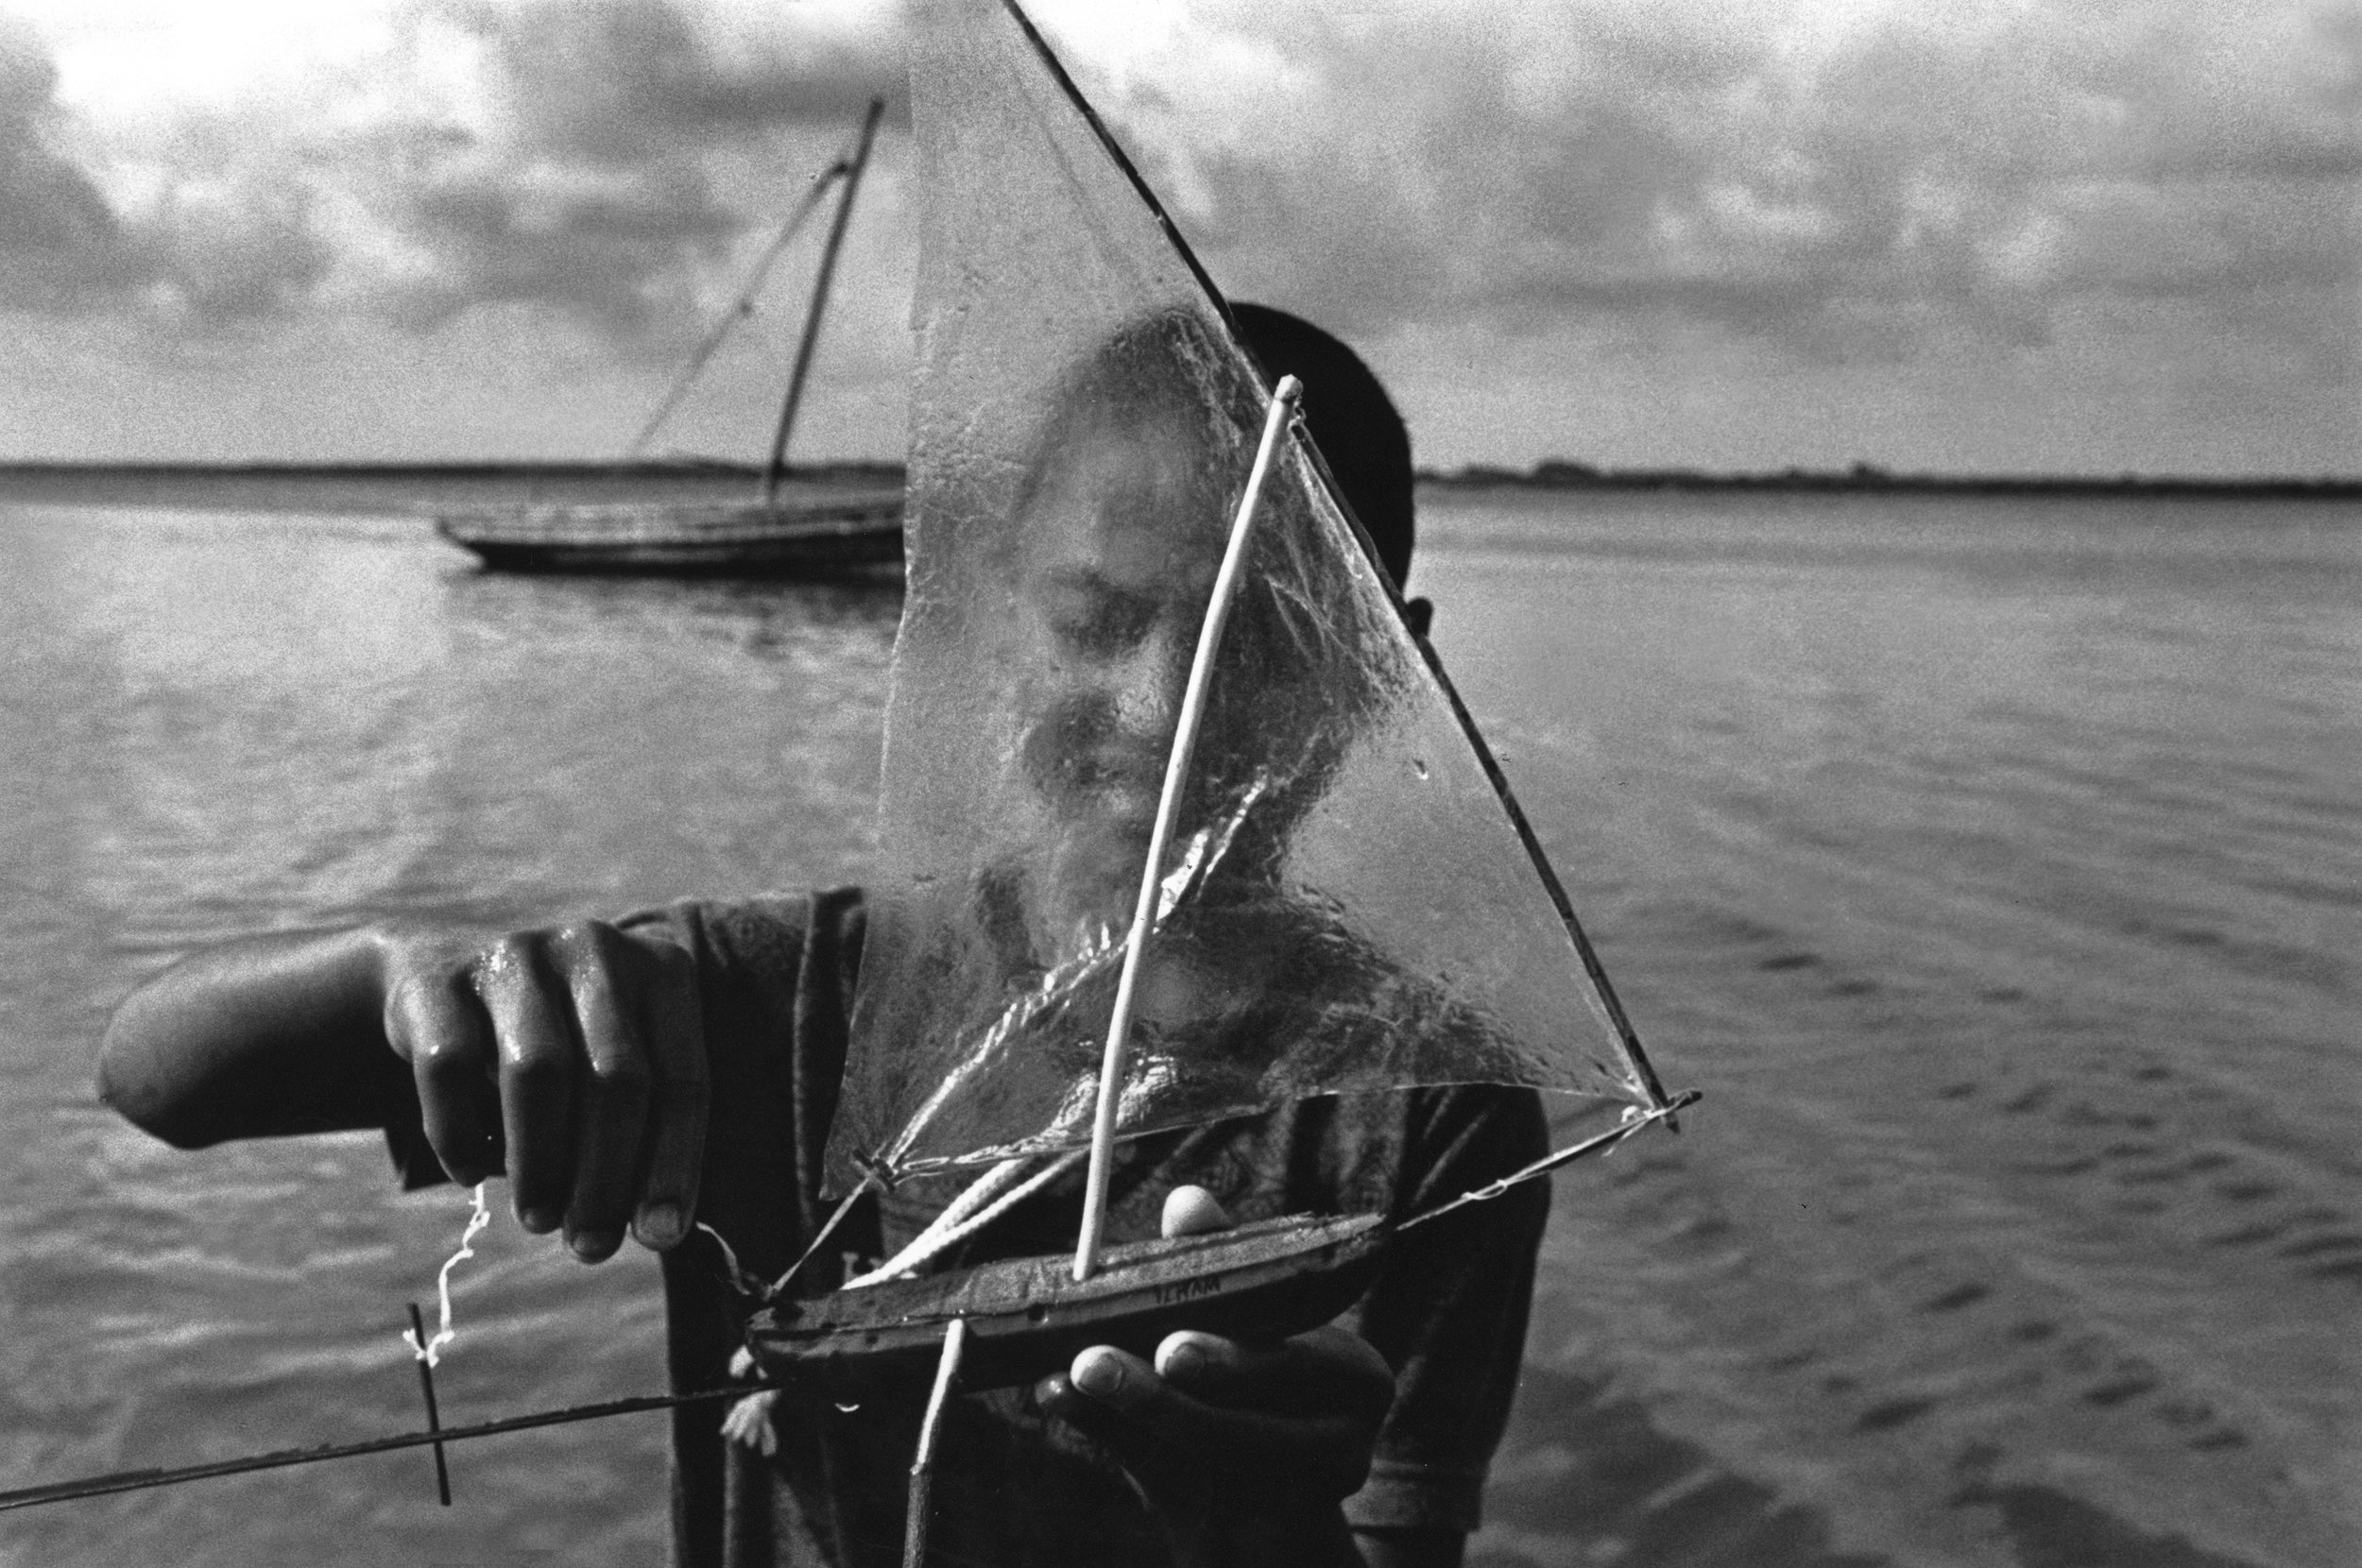 Prelude to sailing. East coast, Mombasa, Kenya. 1999